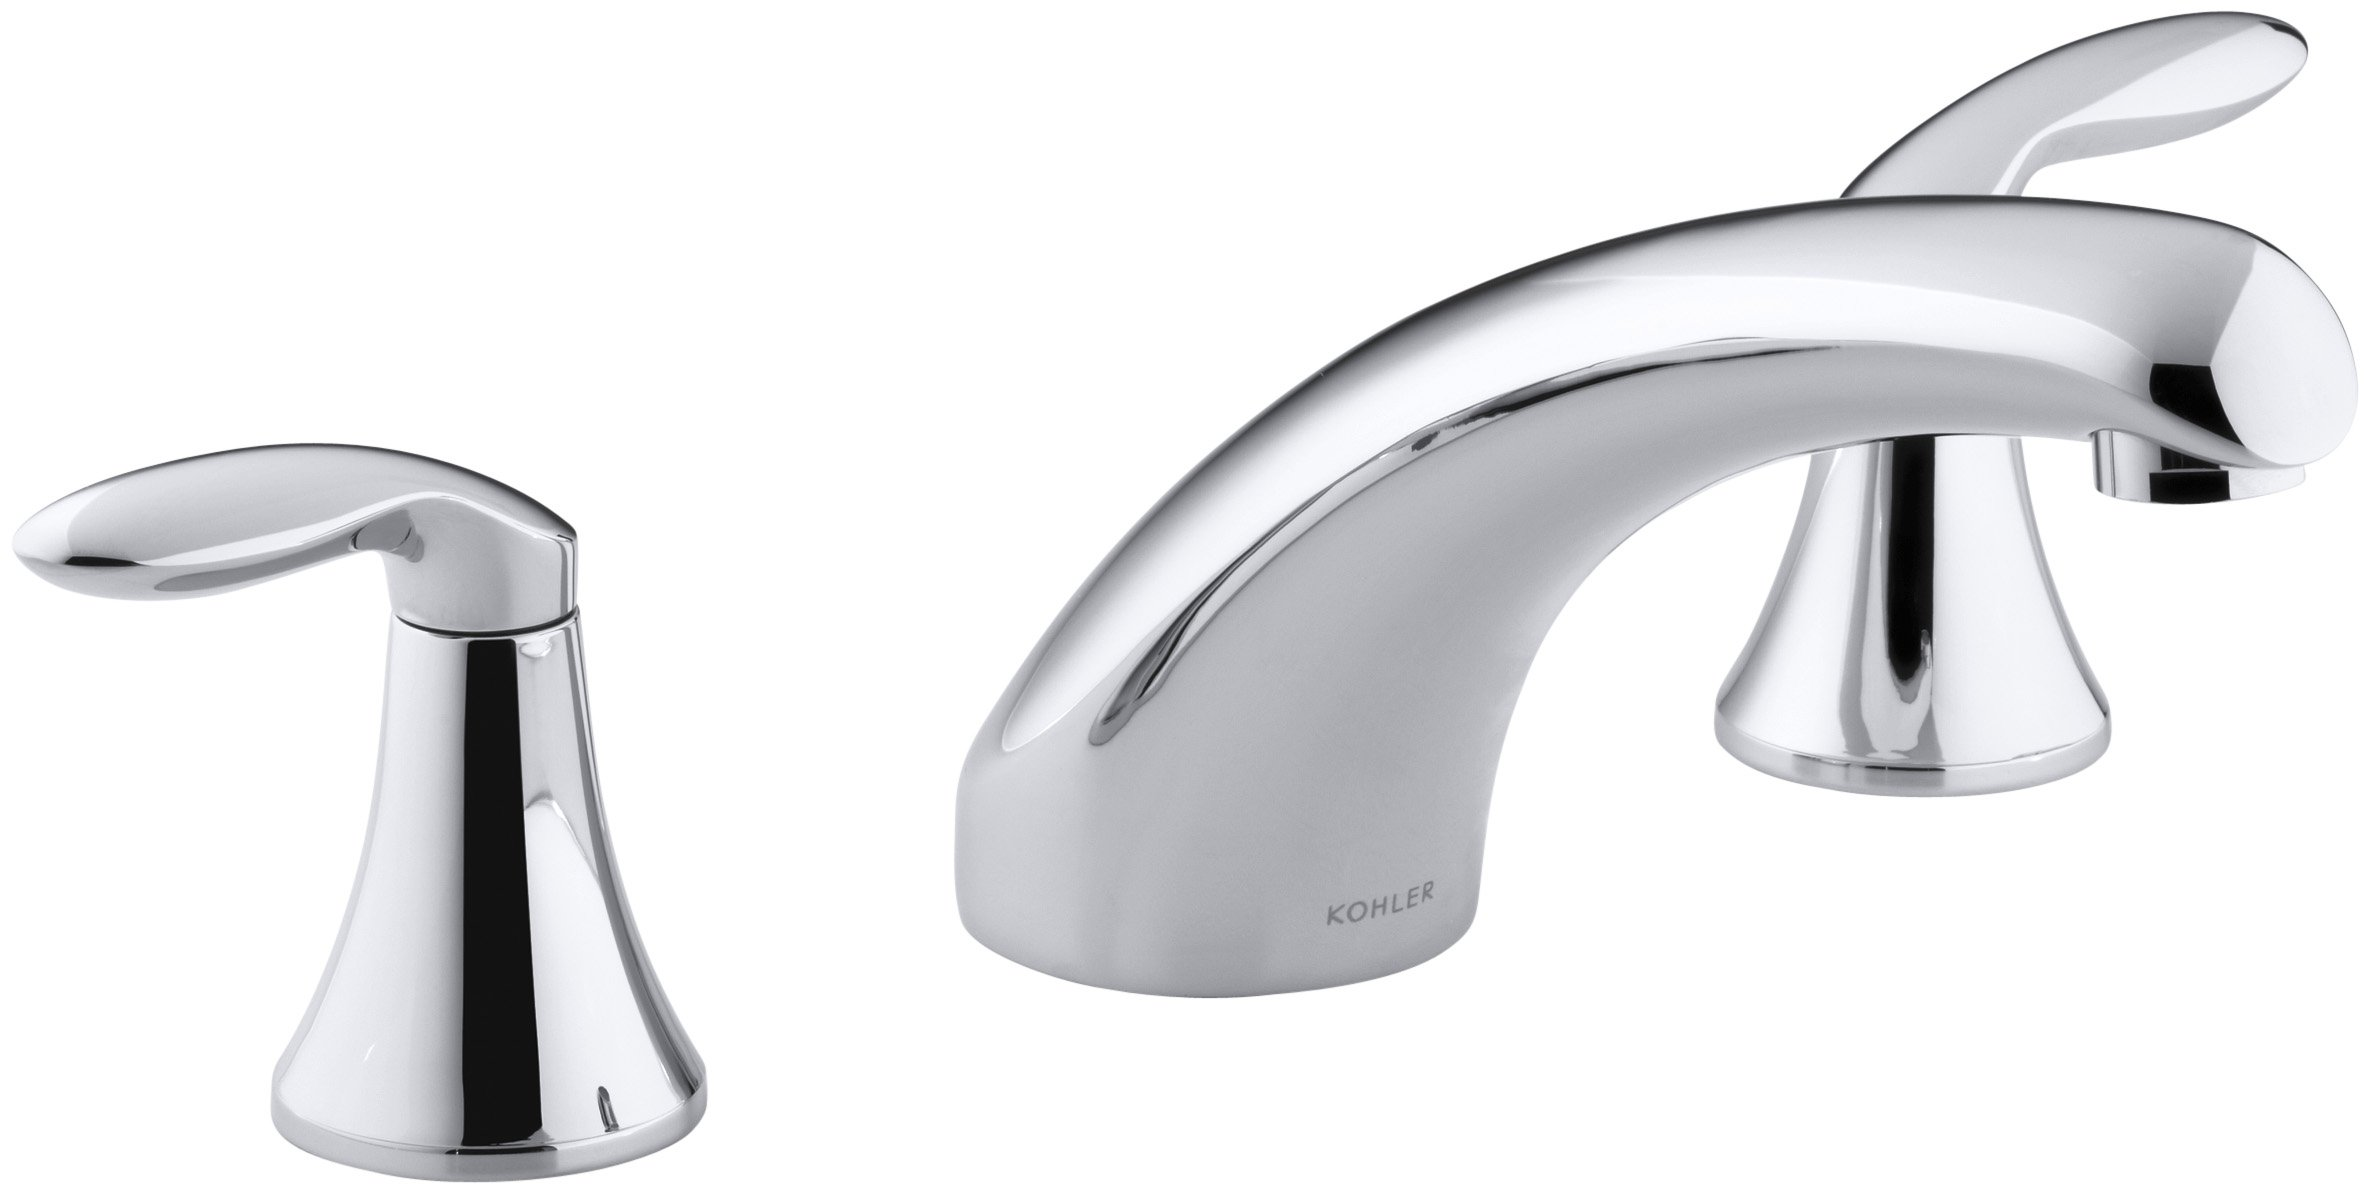 KOHLER K-T15290-4-CP Coralais Deck-mount bath faucet trim with 8'' spout and lever handles, Polished Chrome(valve not included)